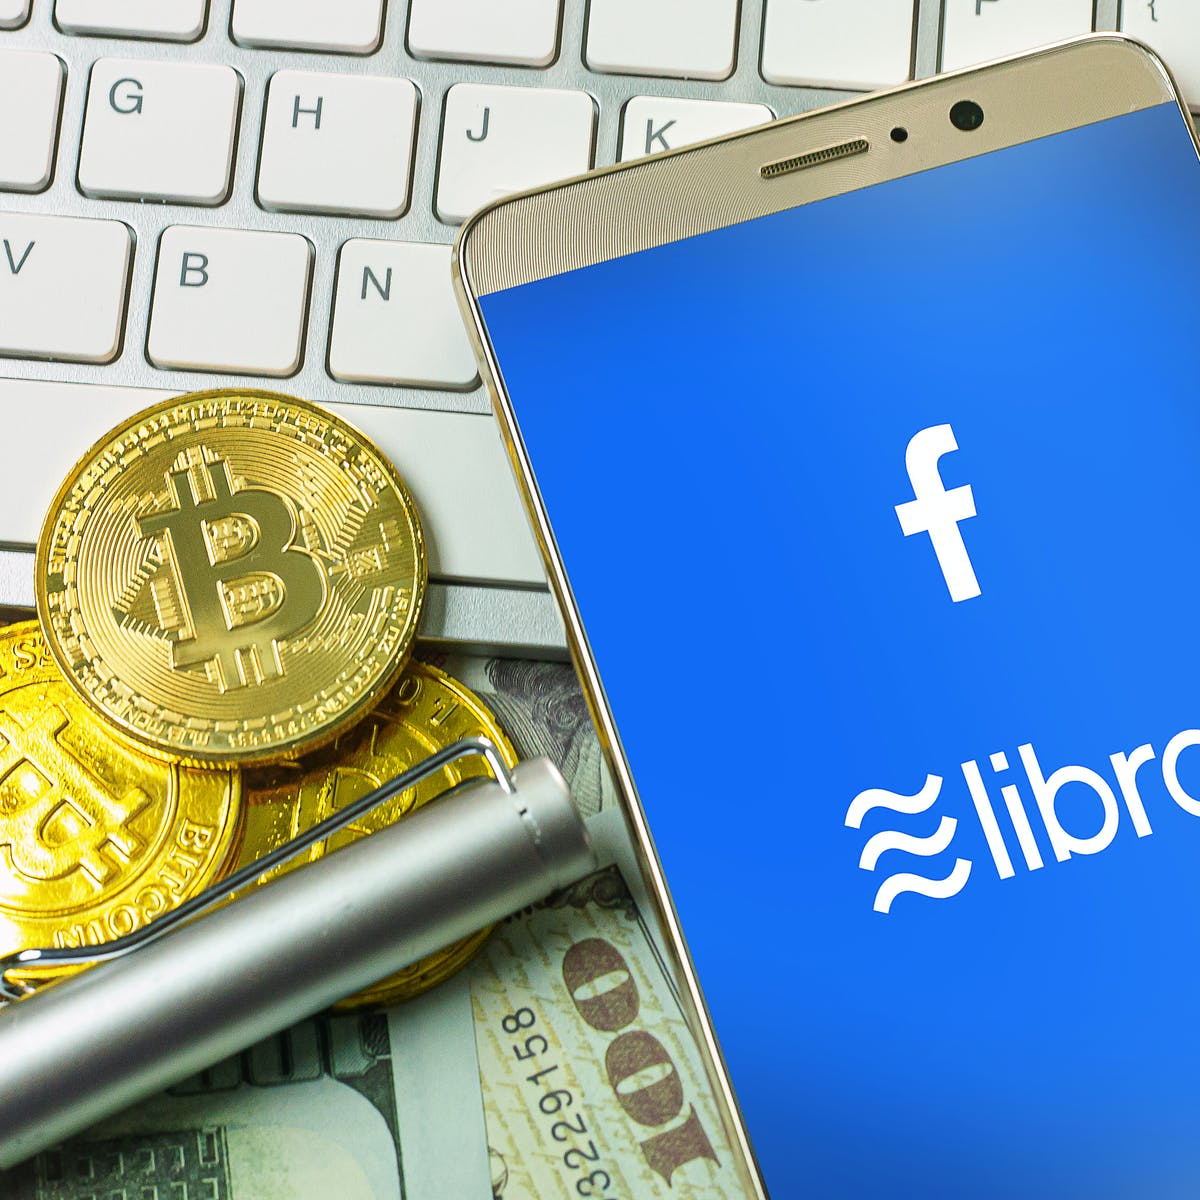 cost of libra cryptocurrency